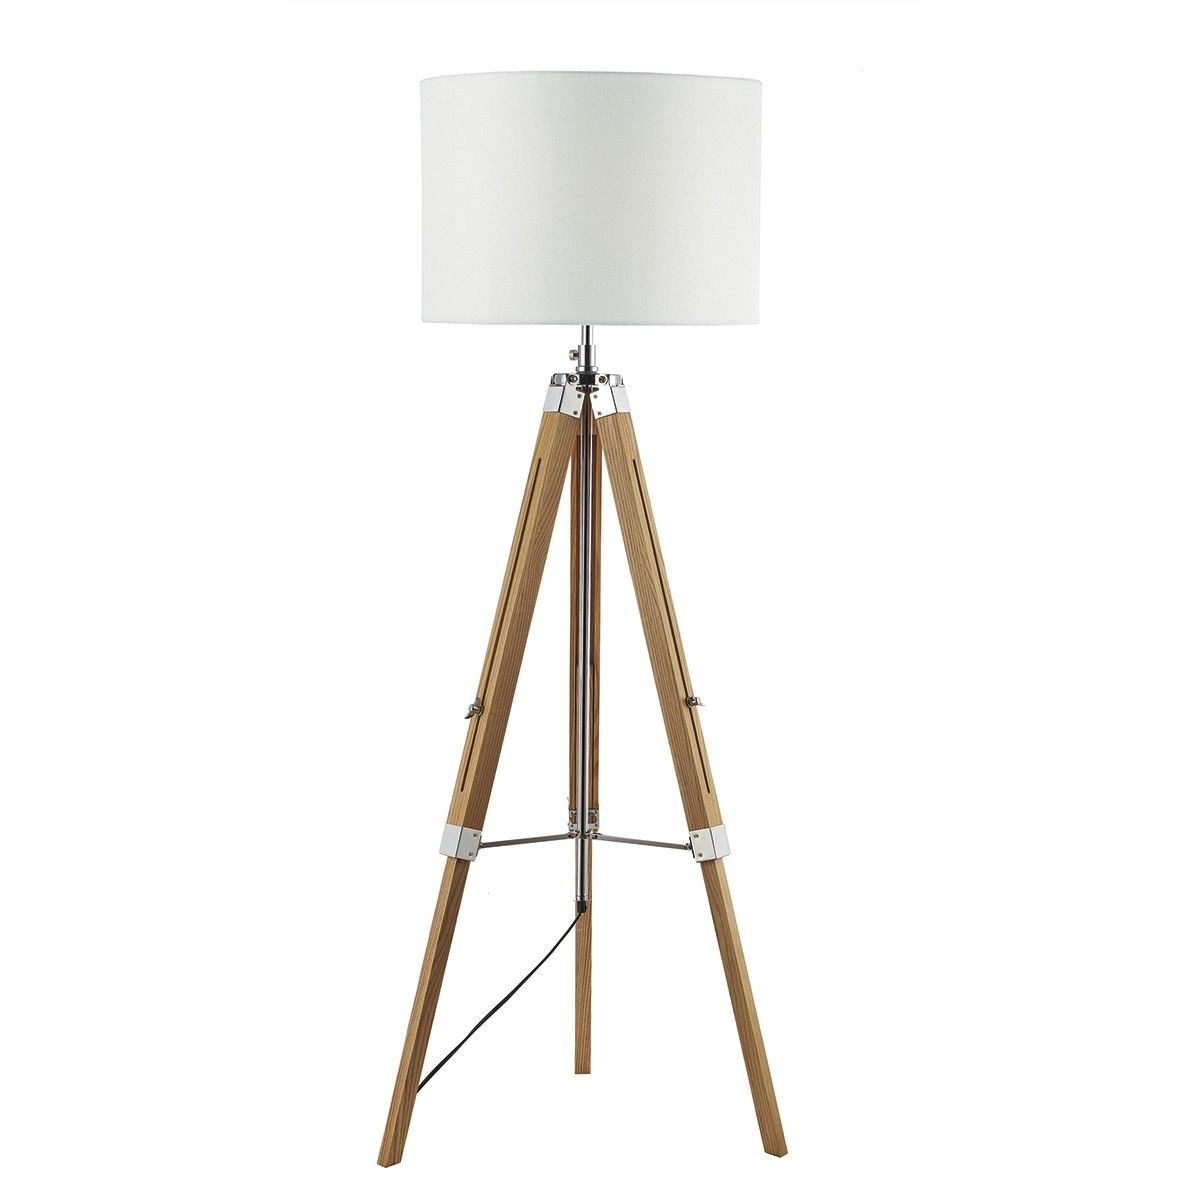 Easel tripod floor lamp base only bz103 backup pinterest easel tripod floor lamp base only mozeypictures